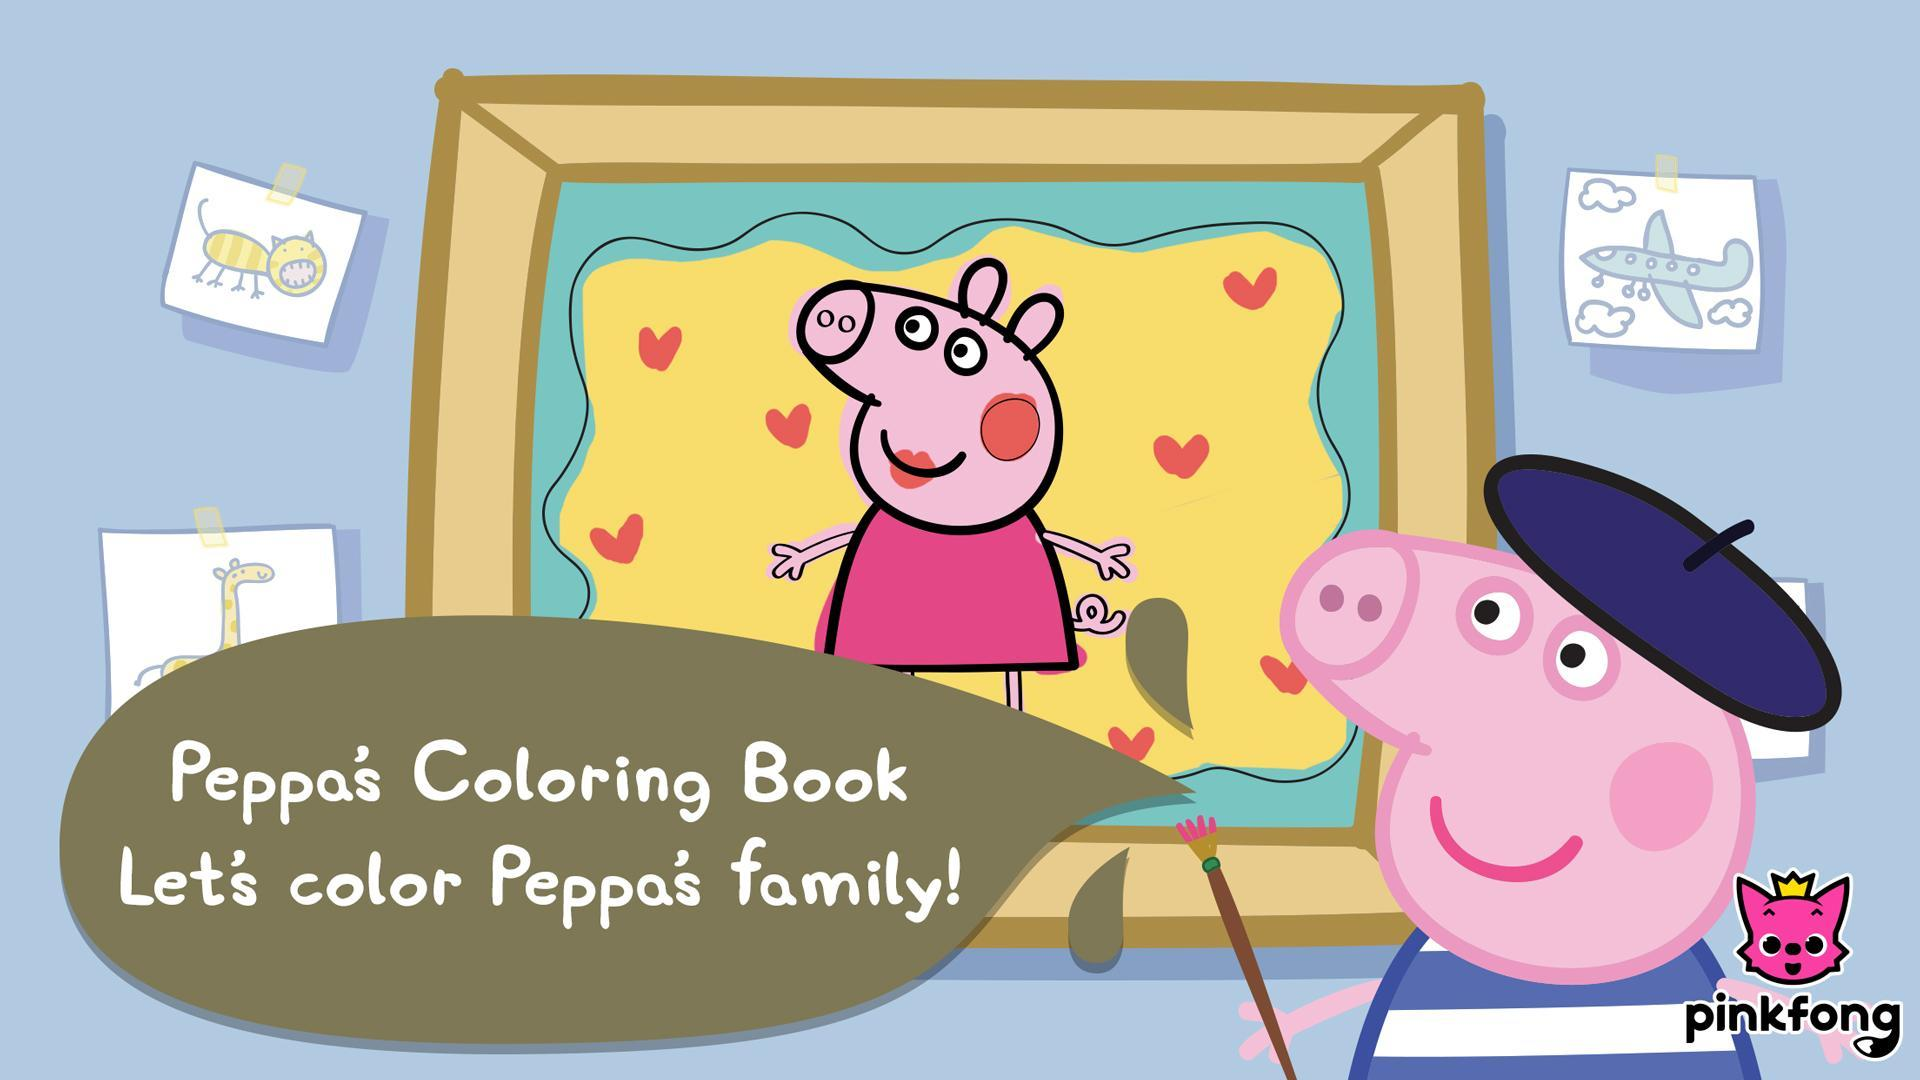 Peppa Pig for Android - APK Download